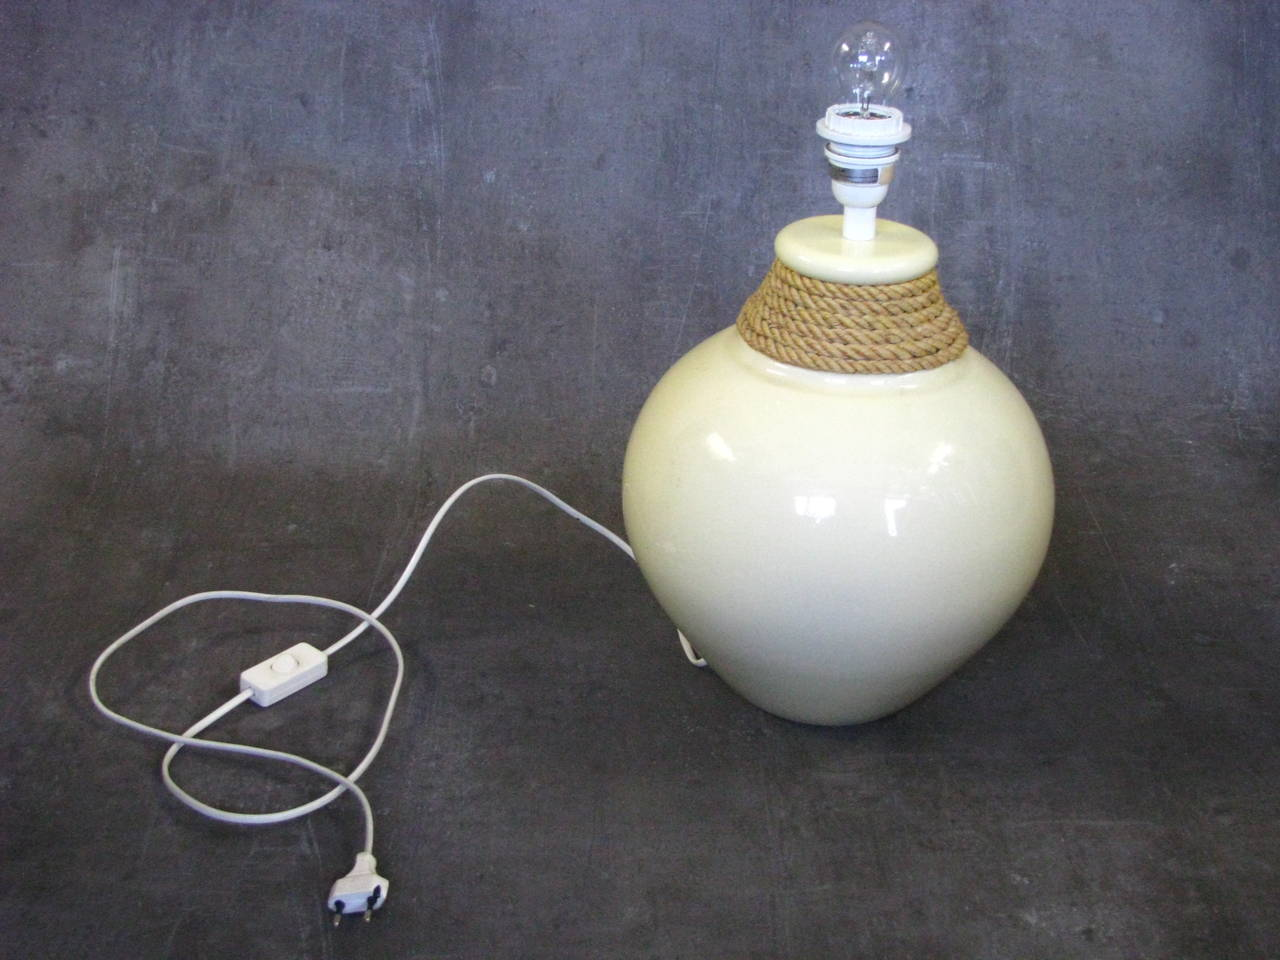 Mid-Century Modern Large 1950s Rope Table Lamp by Audoux and Minet, France For Sale